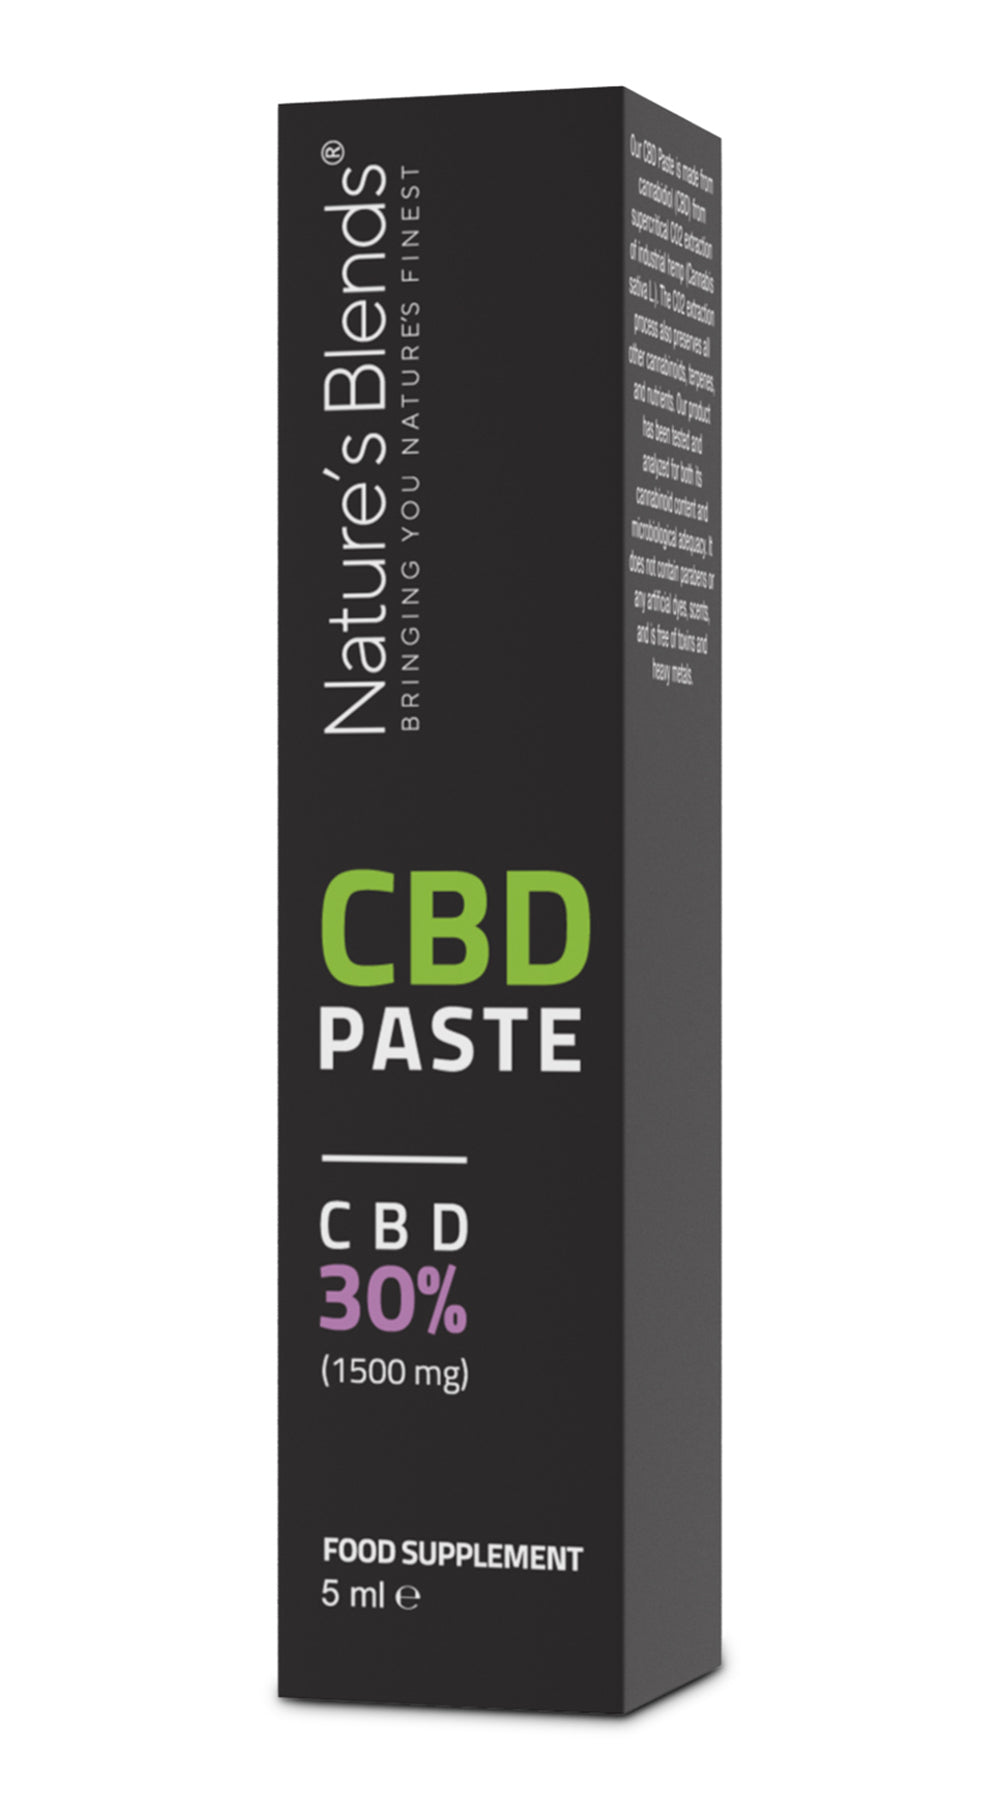 CBD PASTE 30% | 1500mg | 5ml